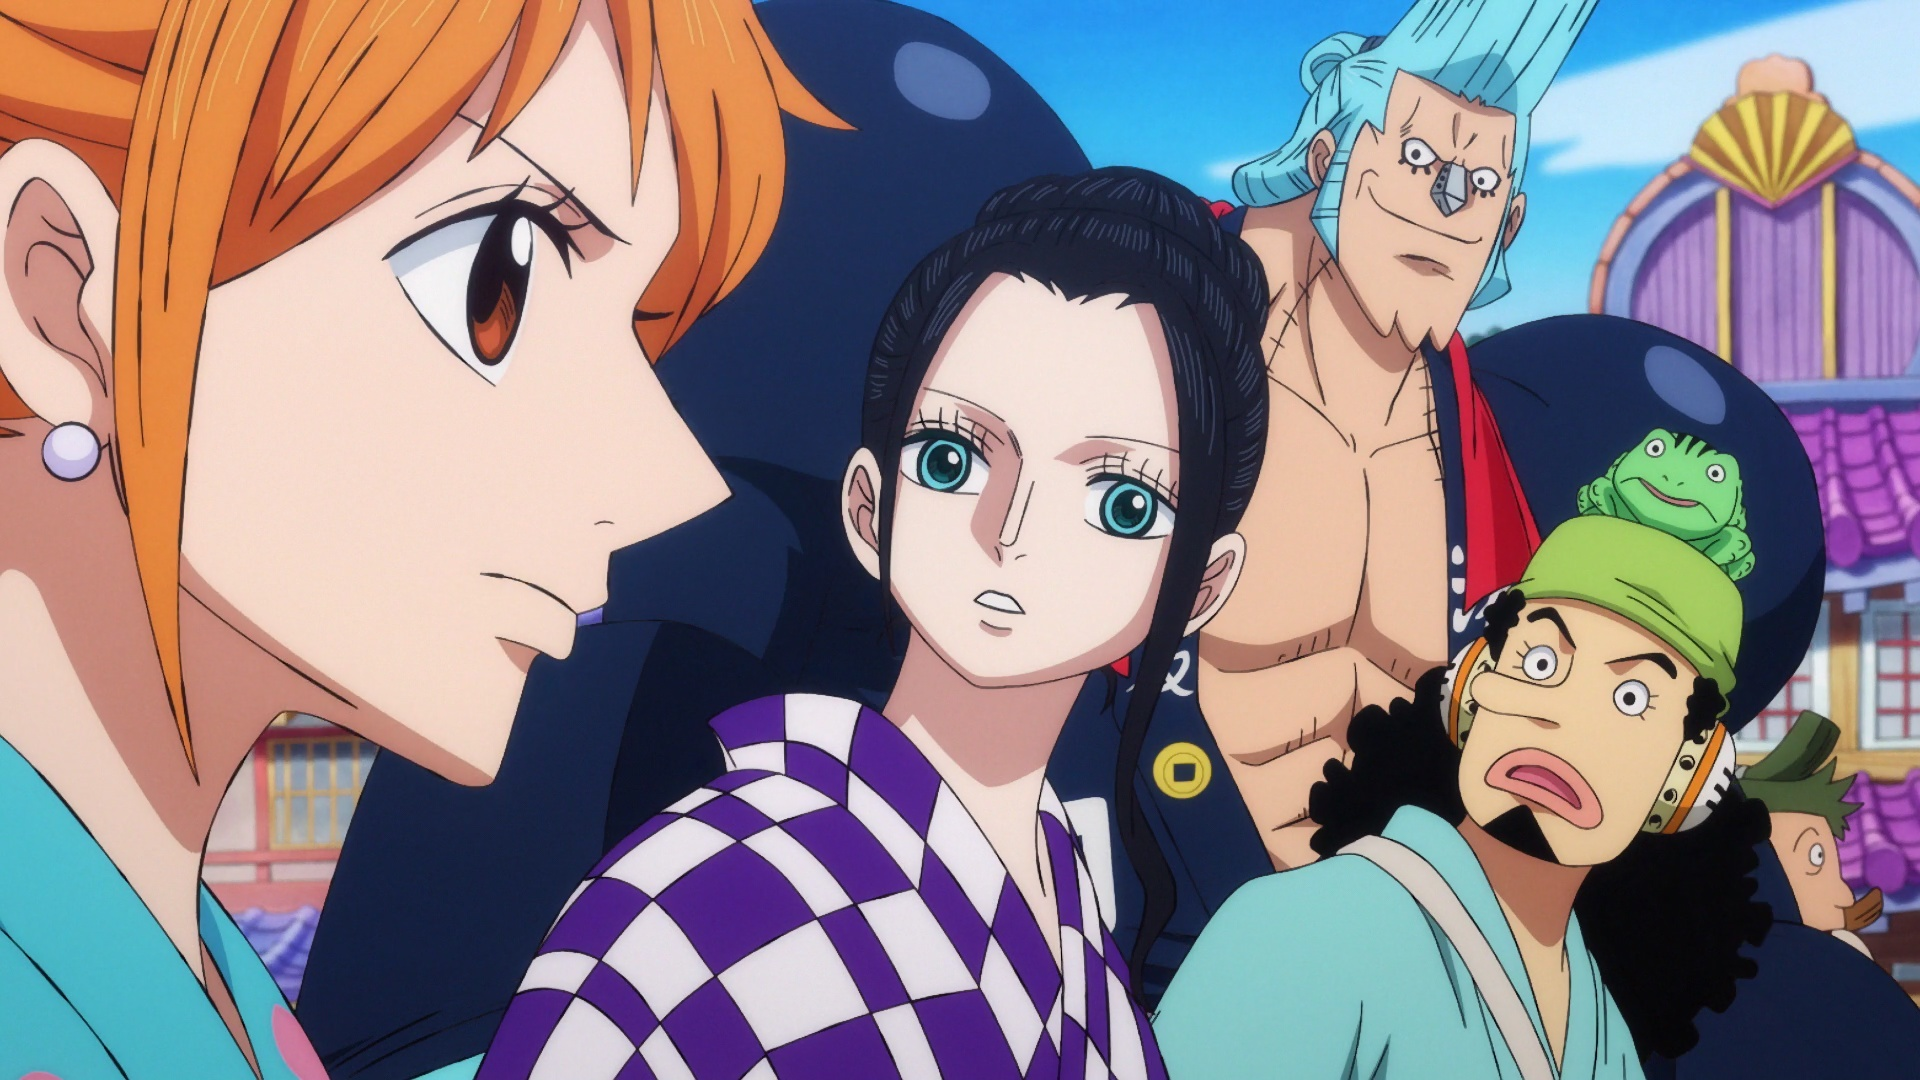 ONE PIECE 942 VOSTFR SD/HD/HD 10BITS/FHD News background